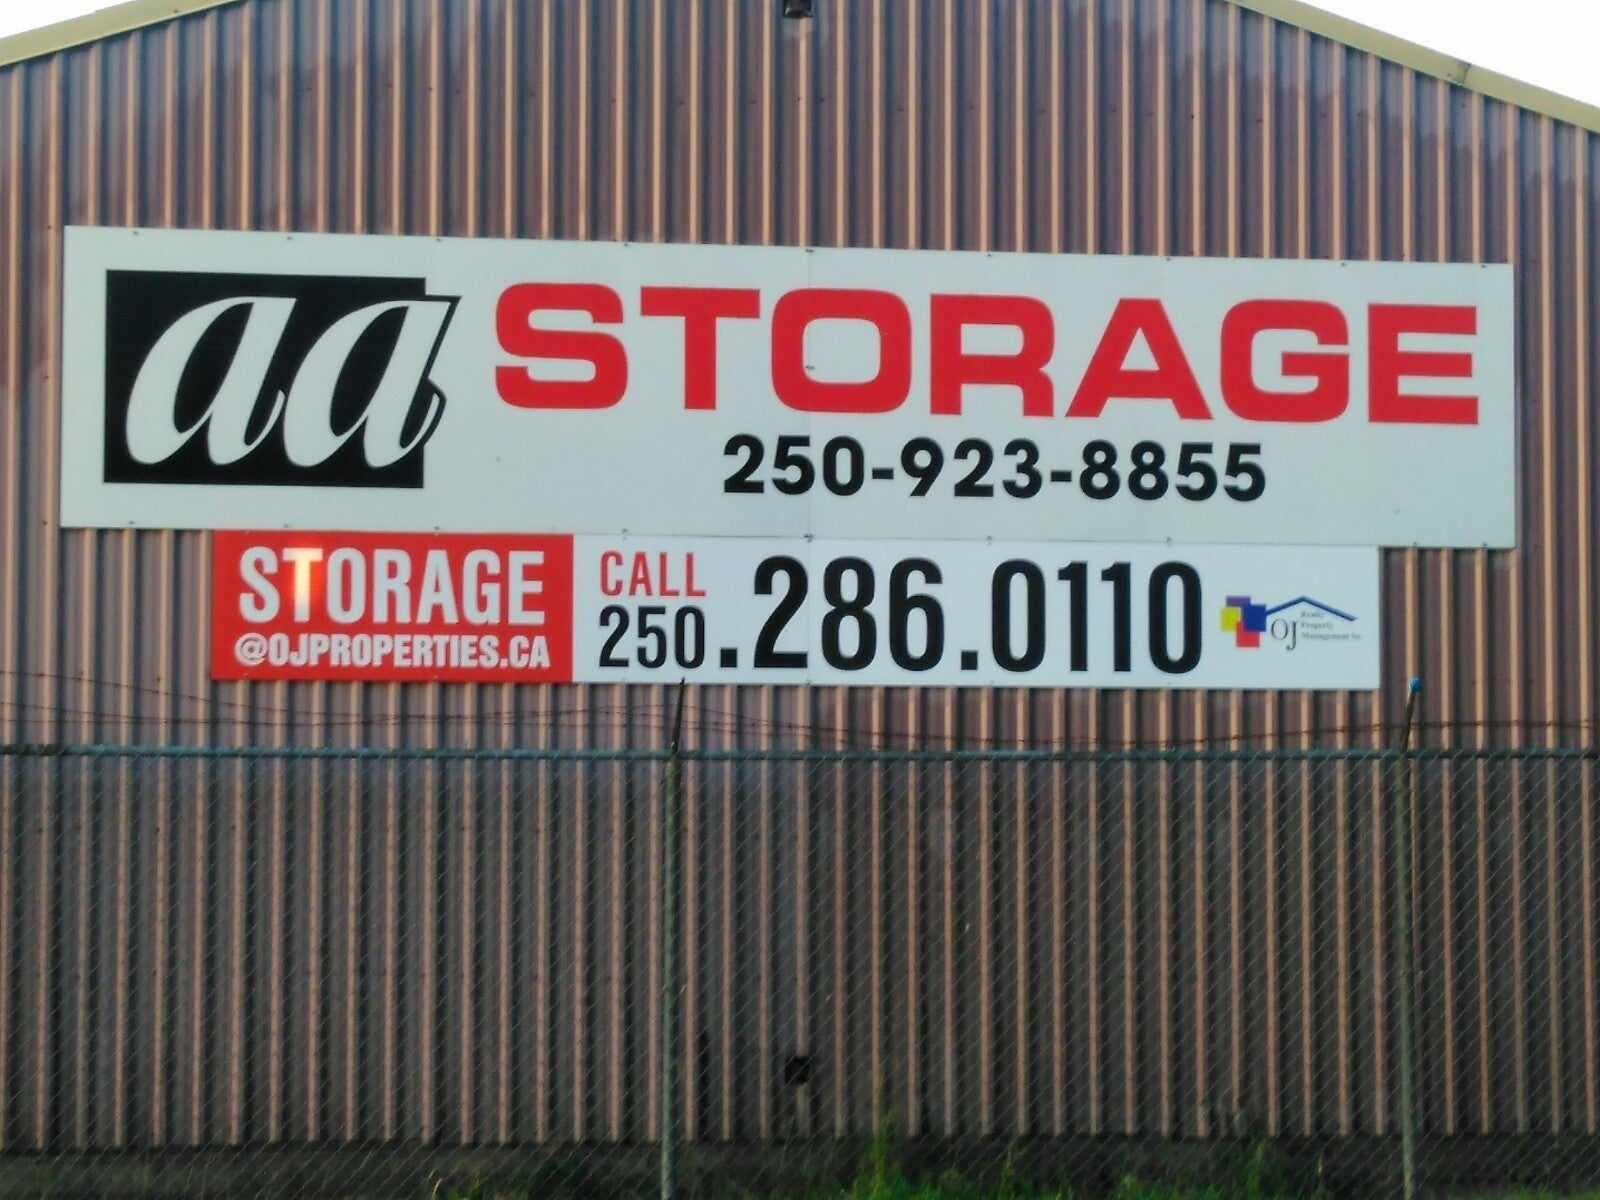 Unit 405 AA Storage - 2139 Airside Dr, Campbell River, BC - Willow Point COMM for sale(E4166172) #1